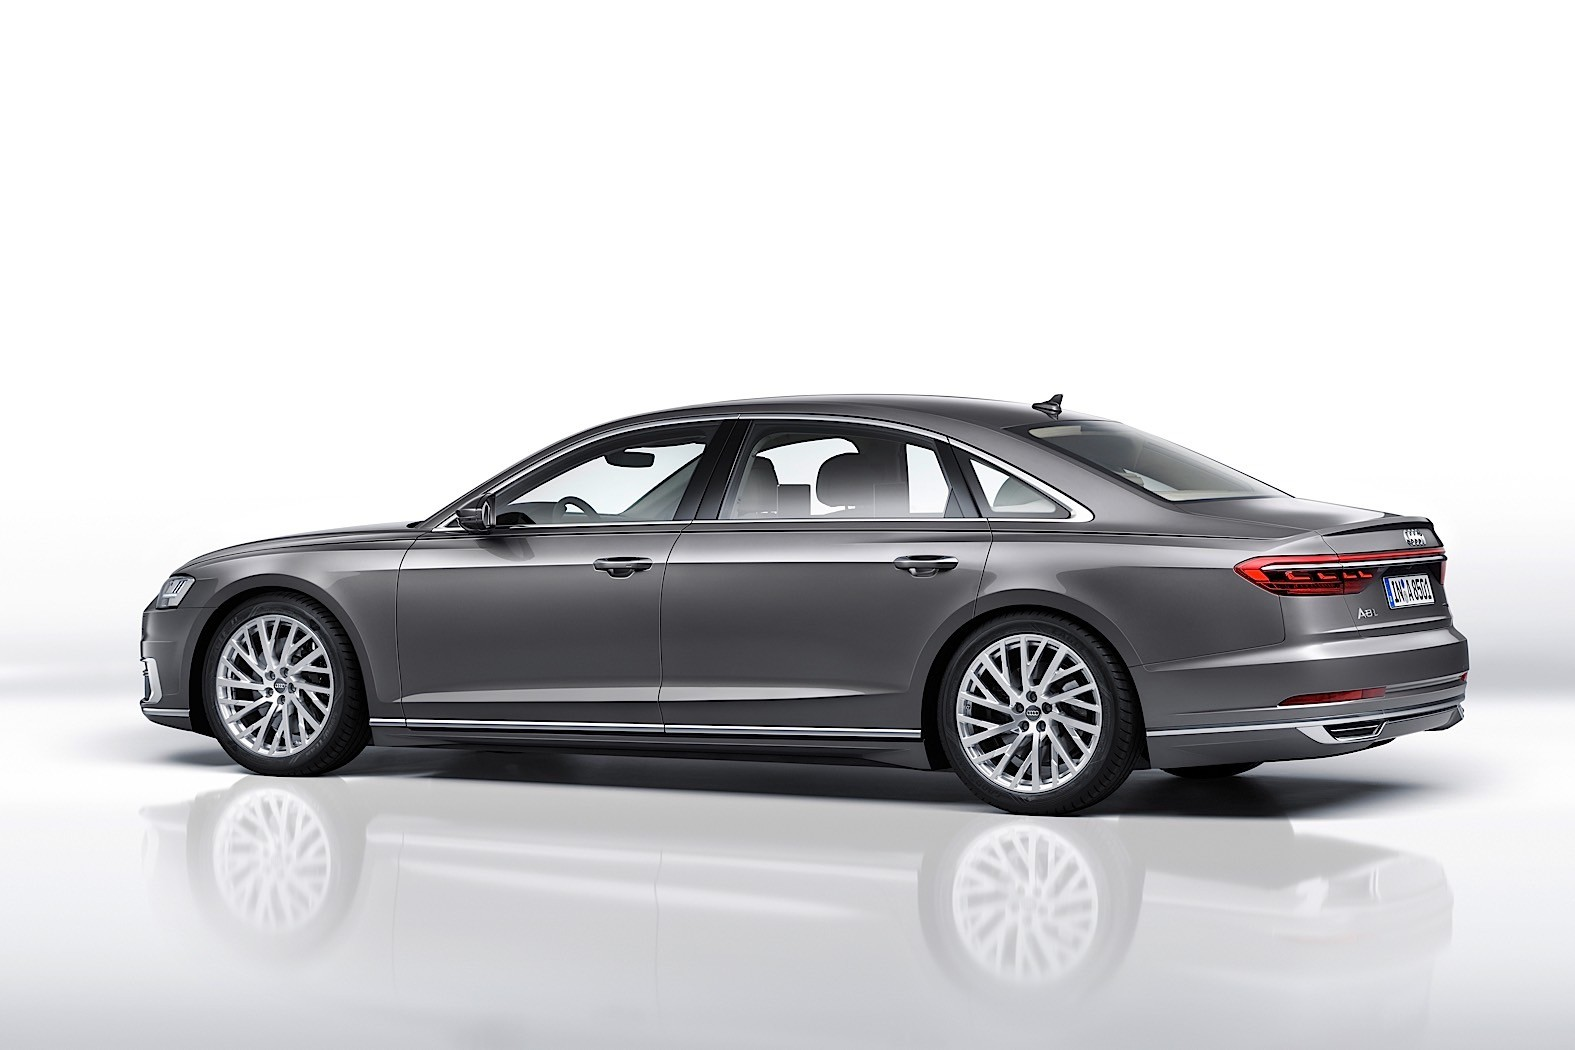 Audi A Goes On Sale With Stupid Names Like TFSI And TDI - 2018 audi a8 for sale